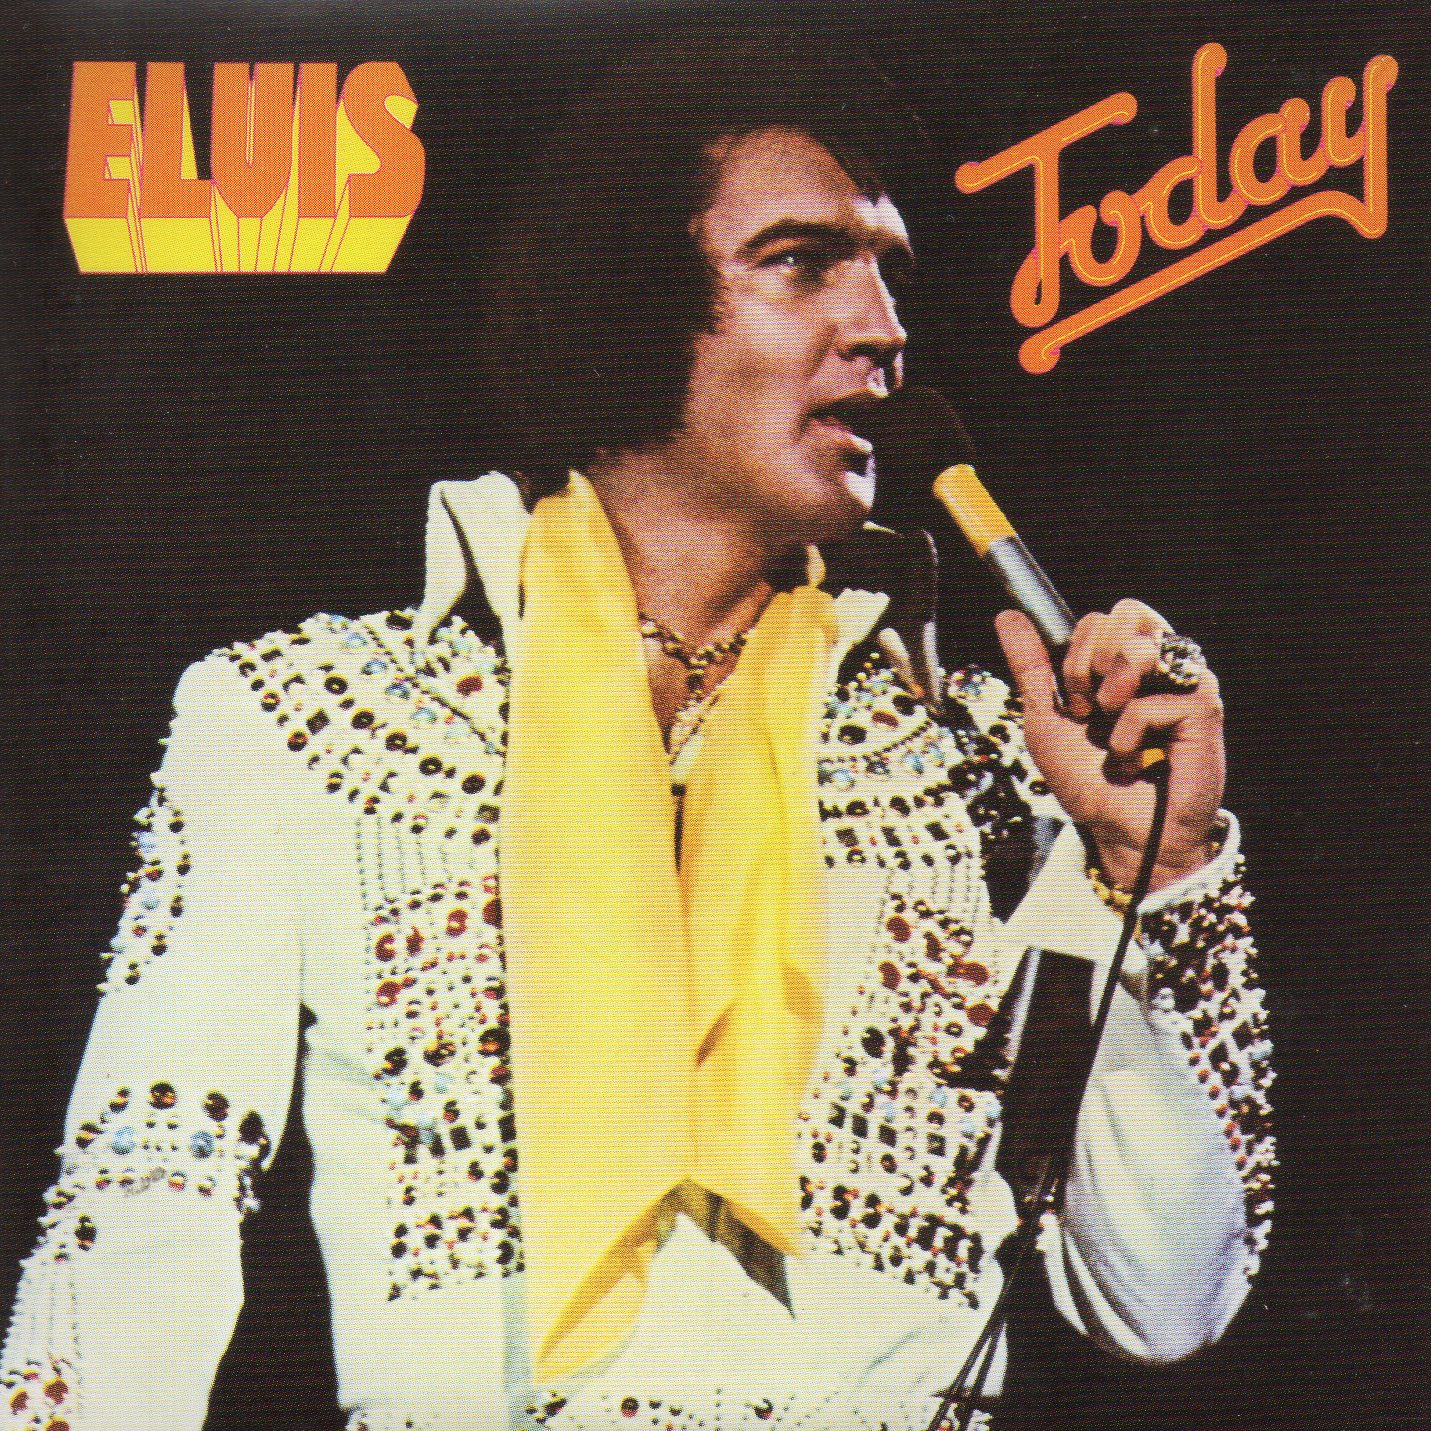 Today (1975 - Mini Lp Replica - 10-track Card Sleeve) - Elvis PRESLEY